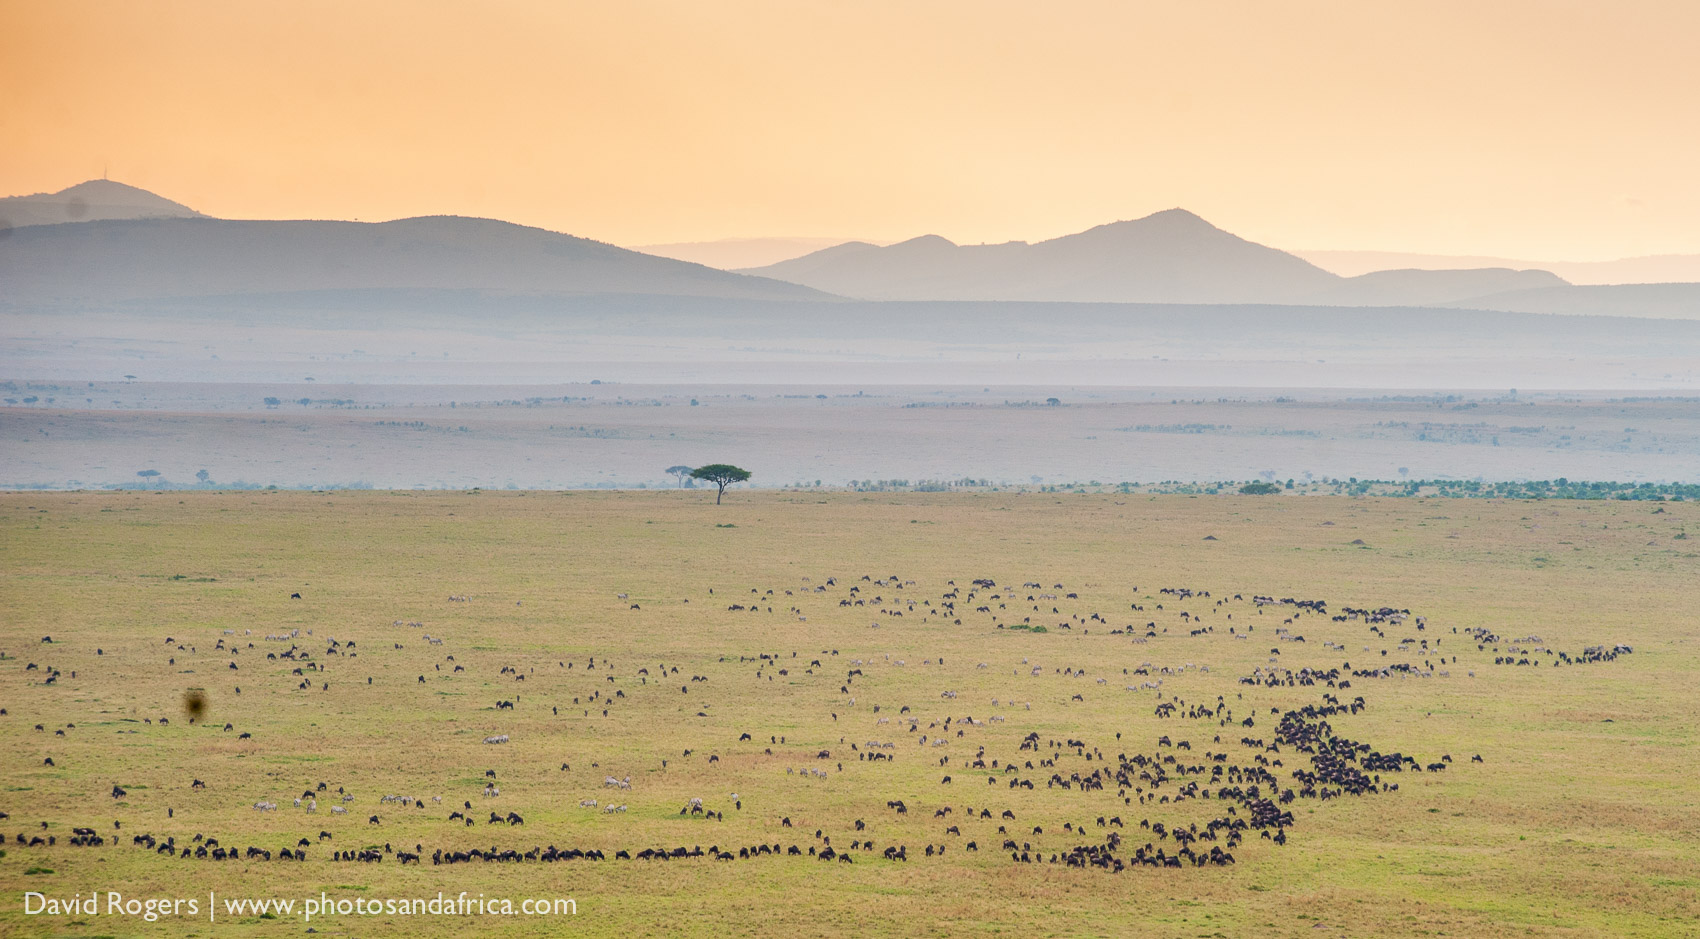 View of the wildebeest herds in the Masai Mara migration from a baloon